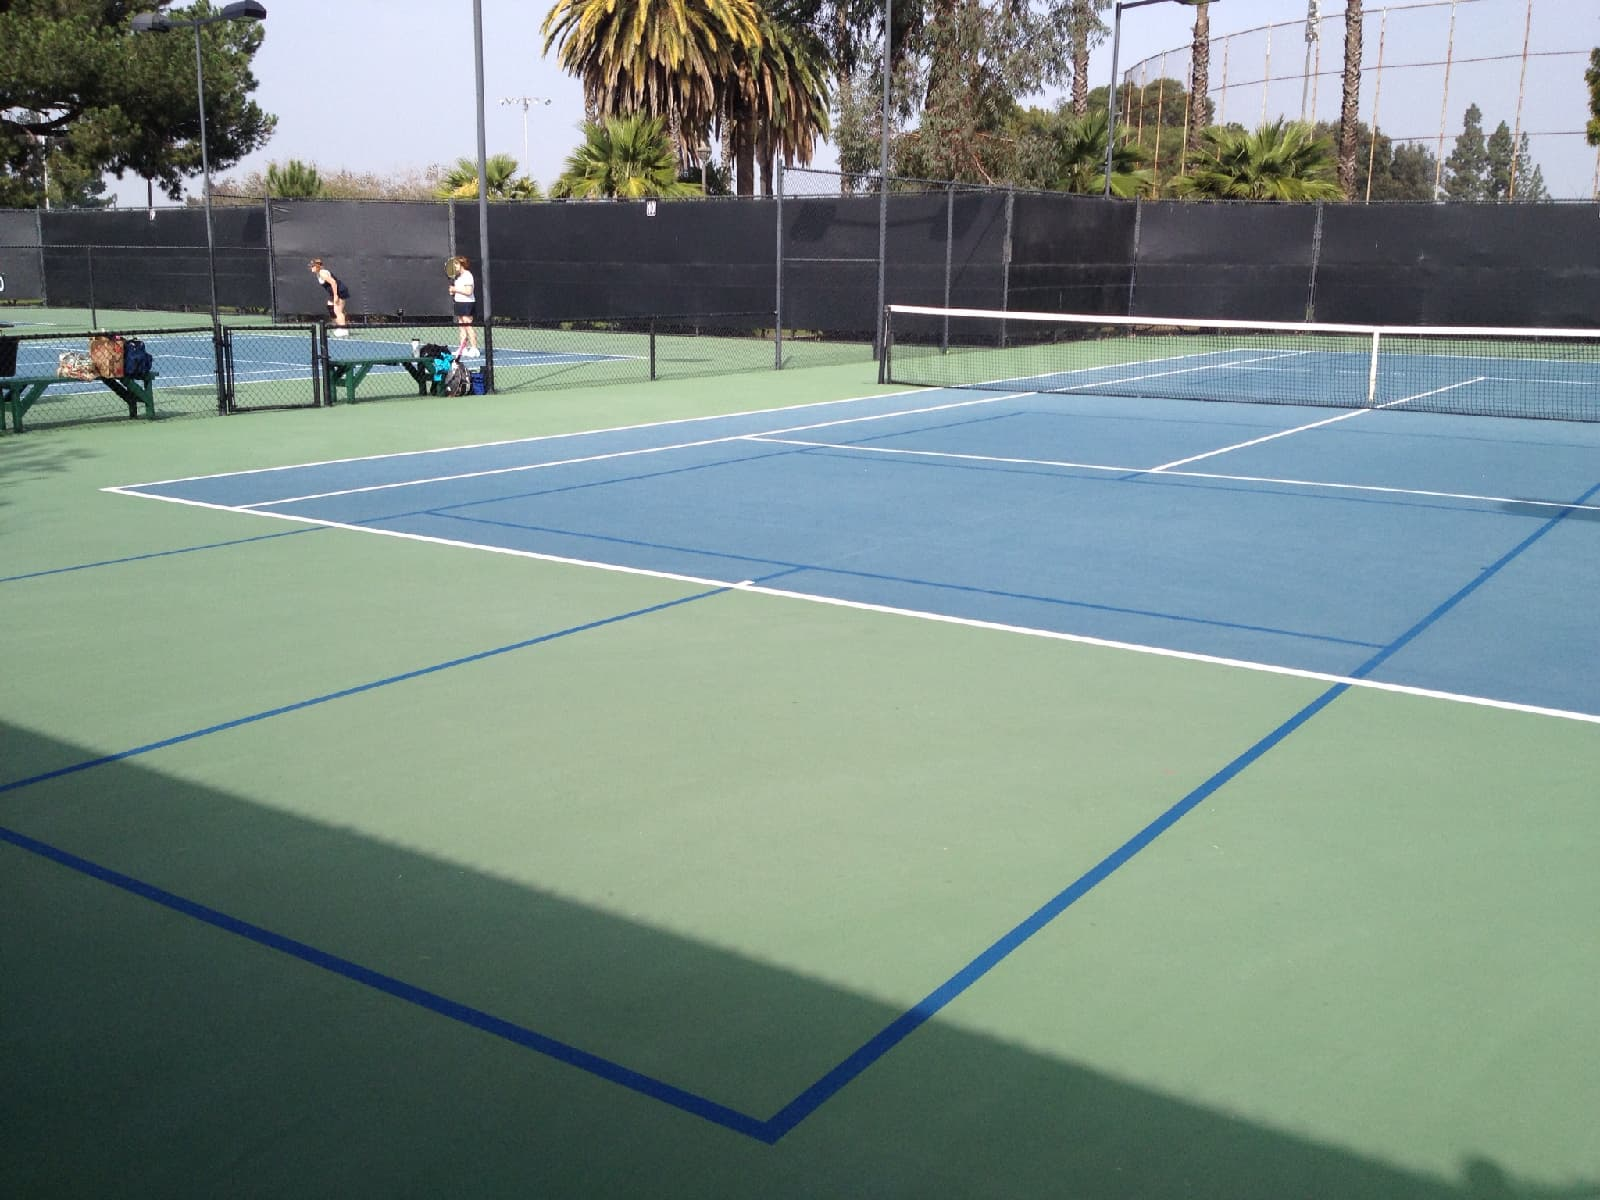 The Royal Lahaina Resort - one of the best tennis resorts for your tennis holidays in Hawaii